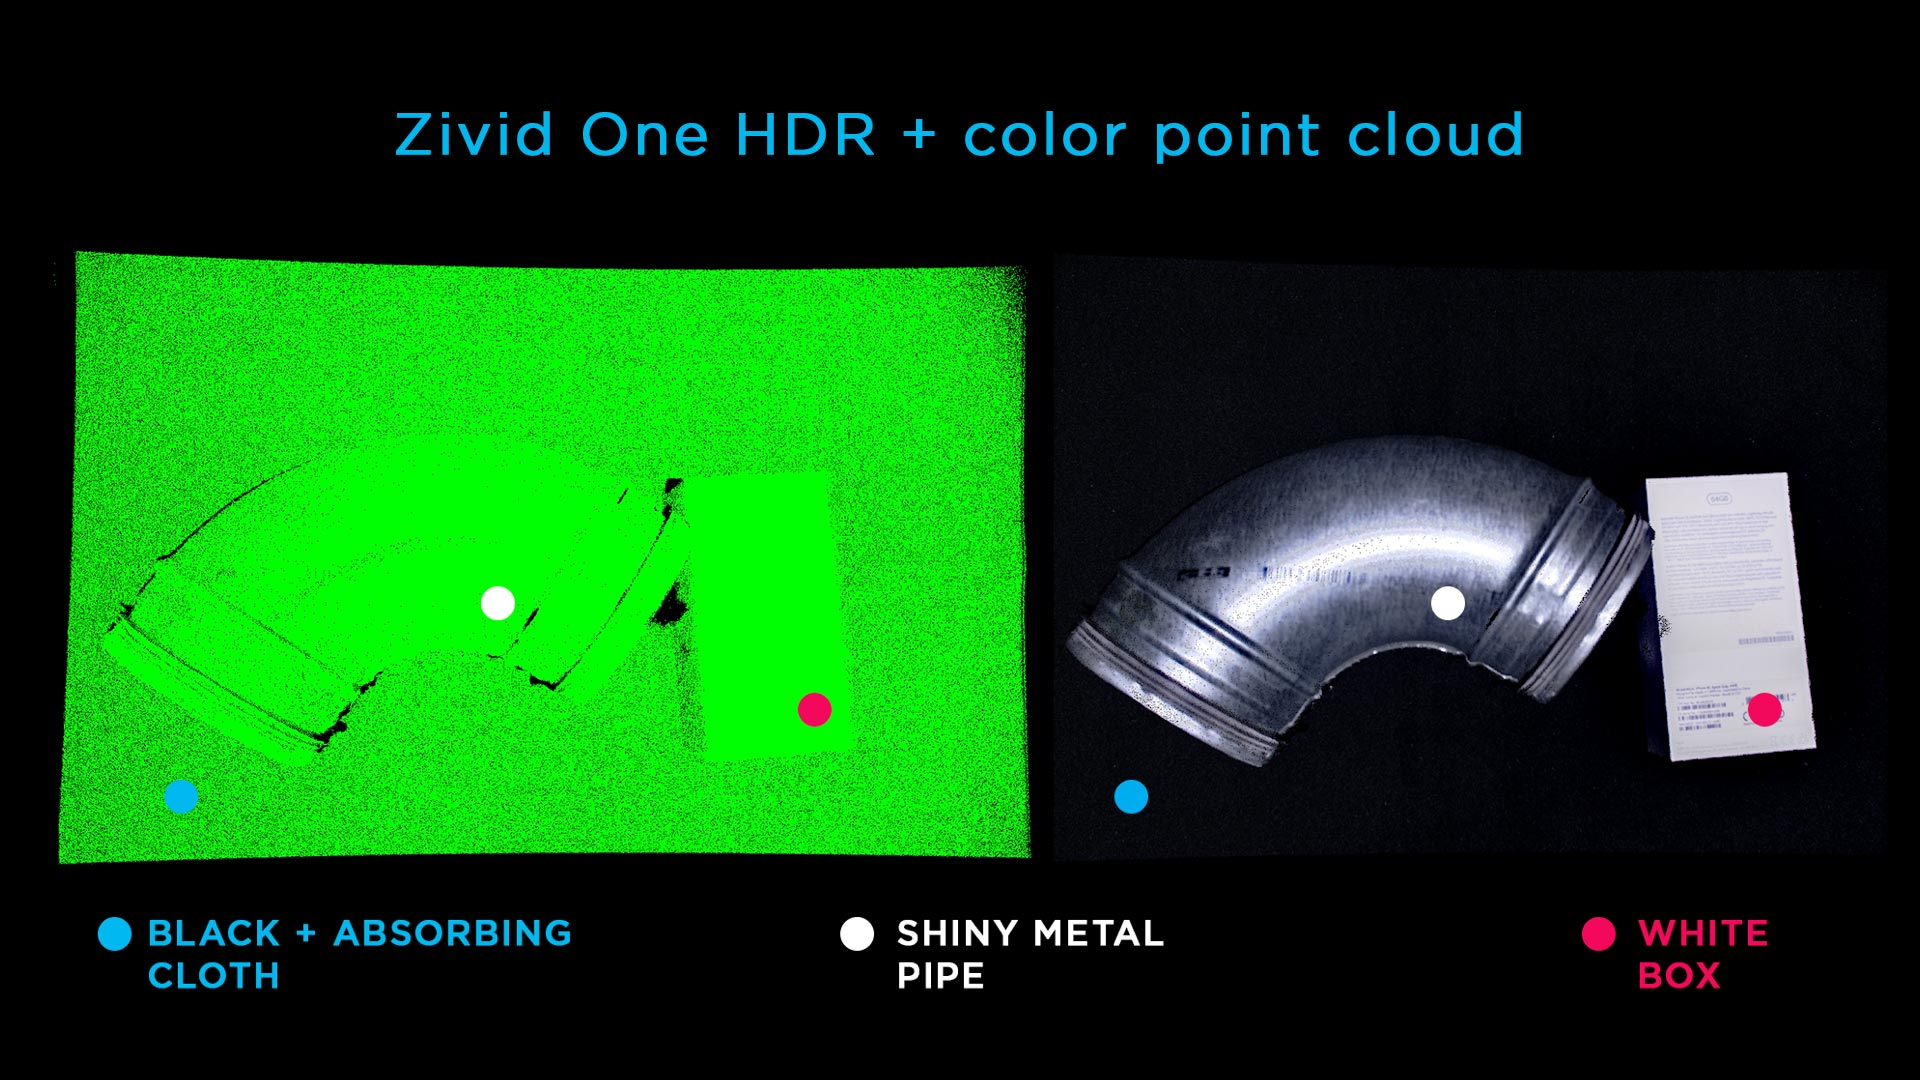 High resolution 3D vision bin-picking objects